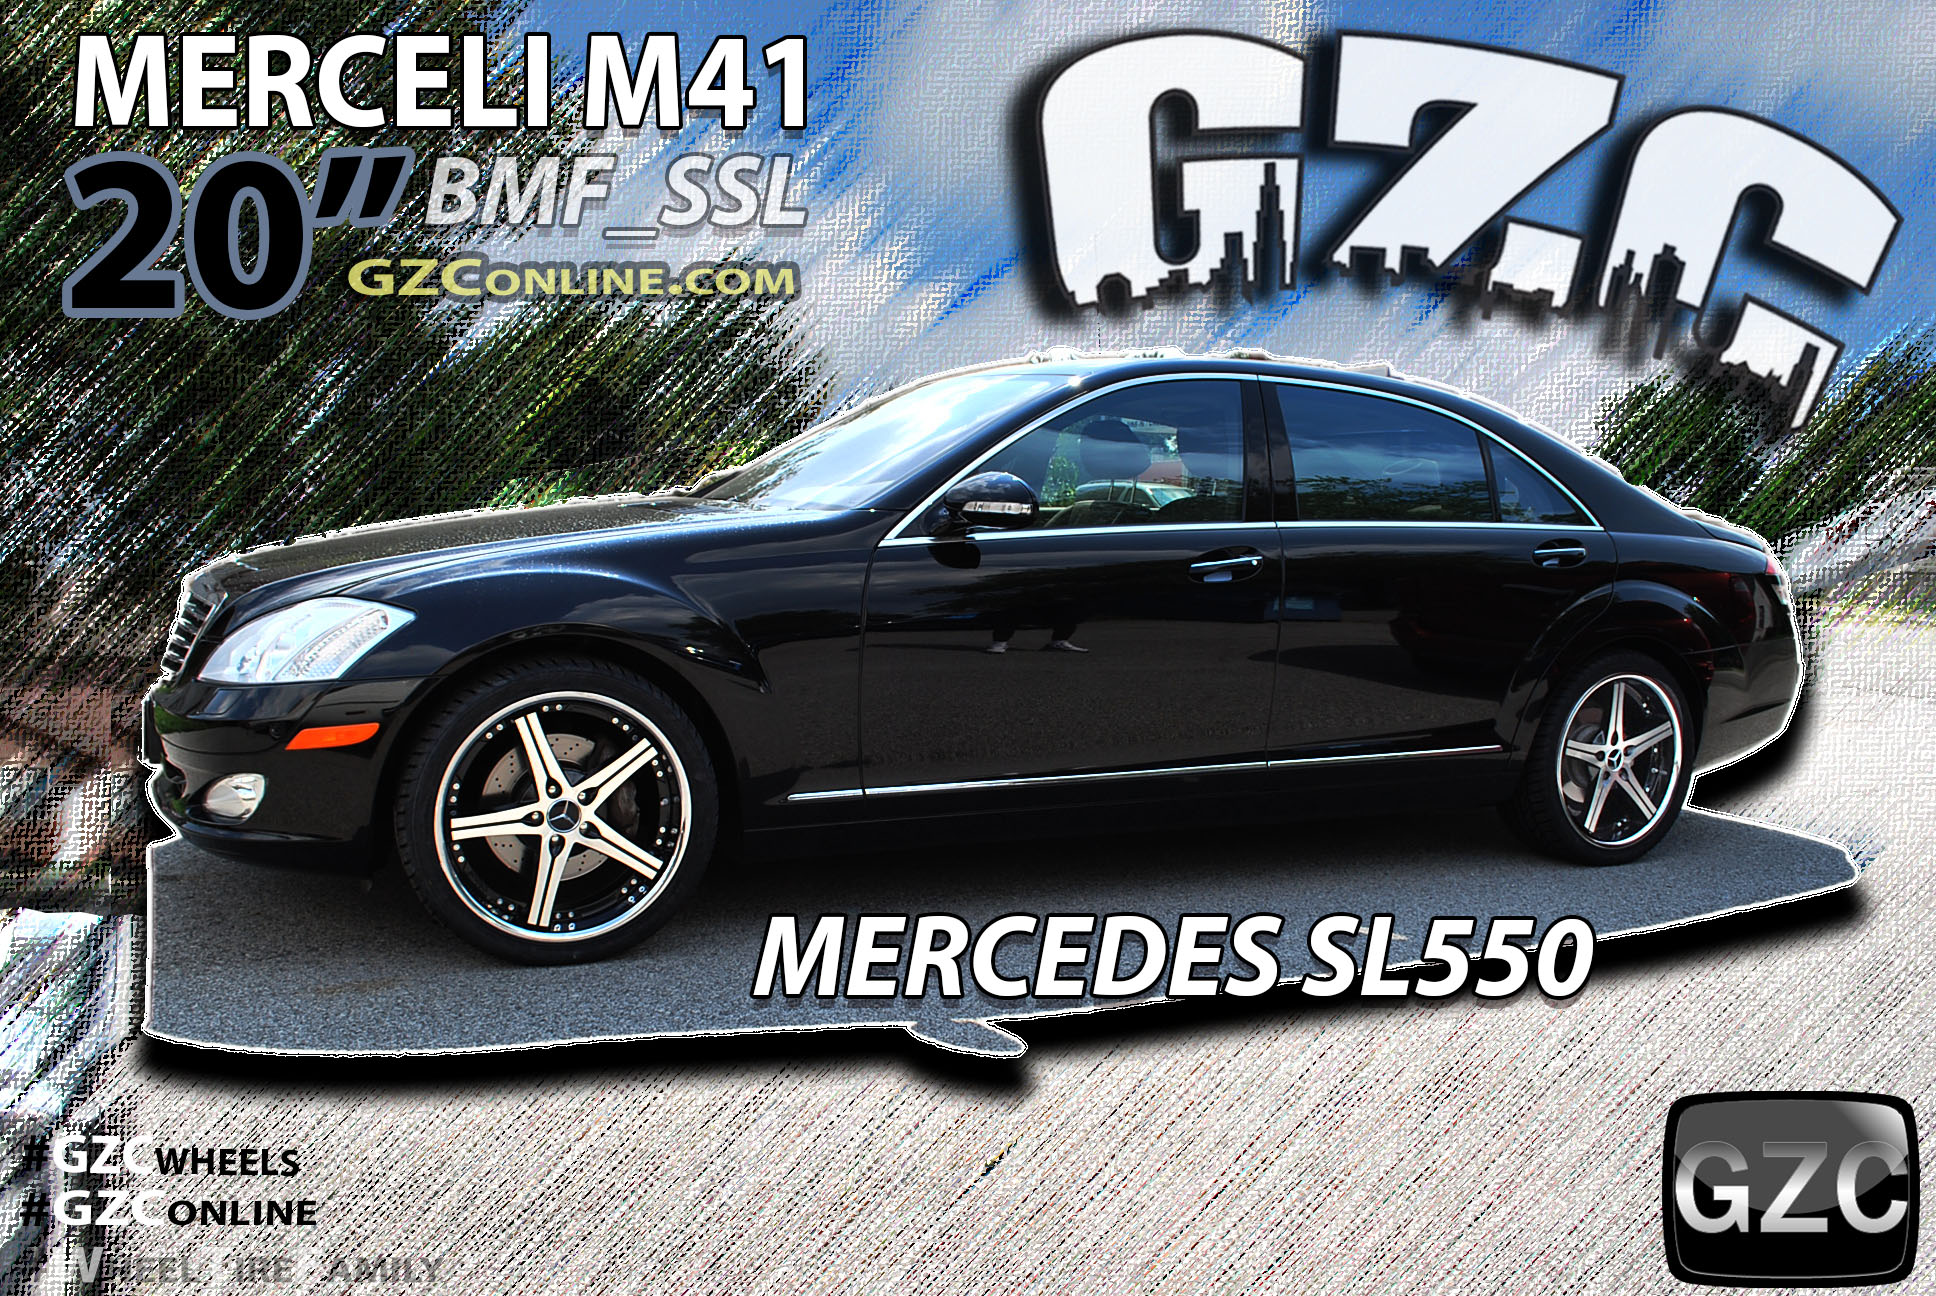 Mercedes SL550 on Merceli M41 Wheels